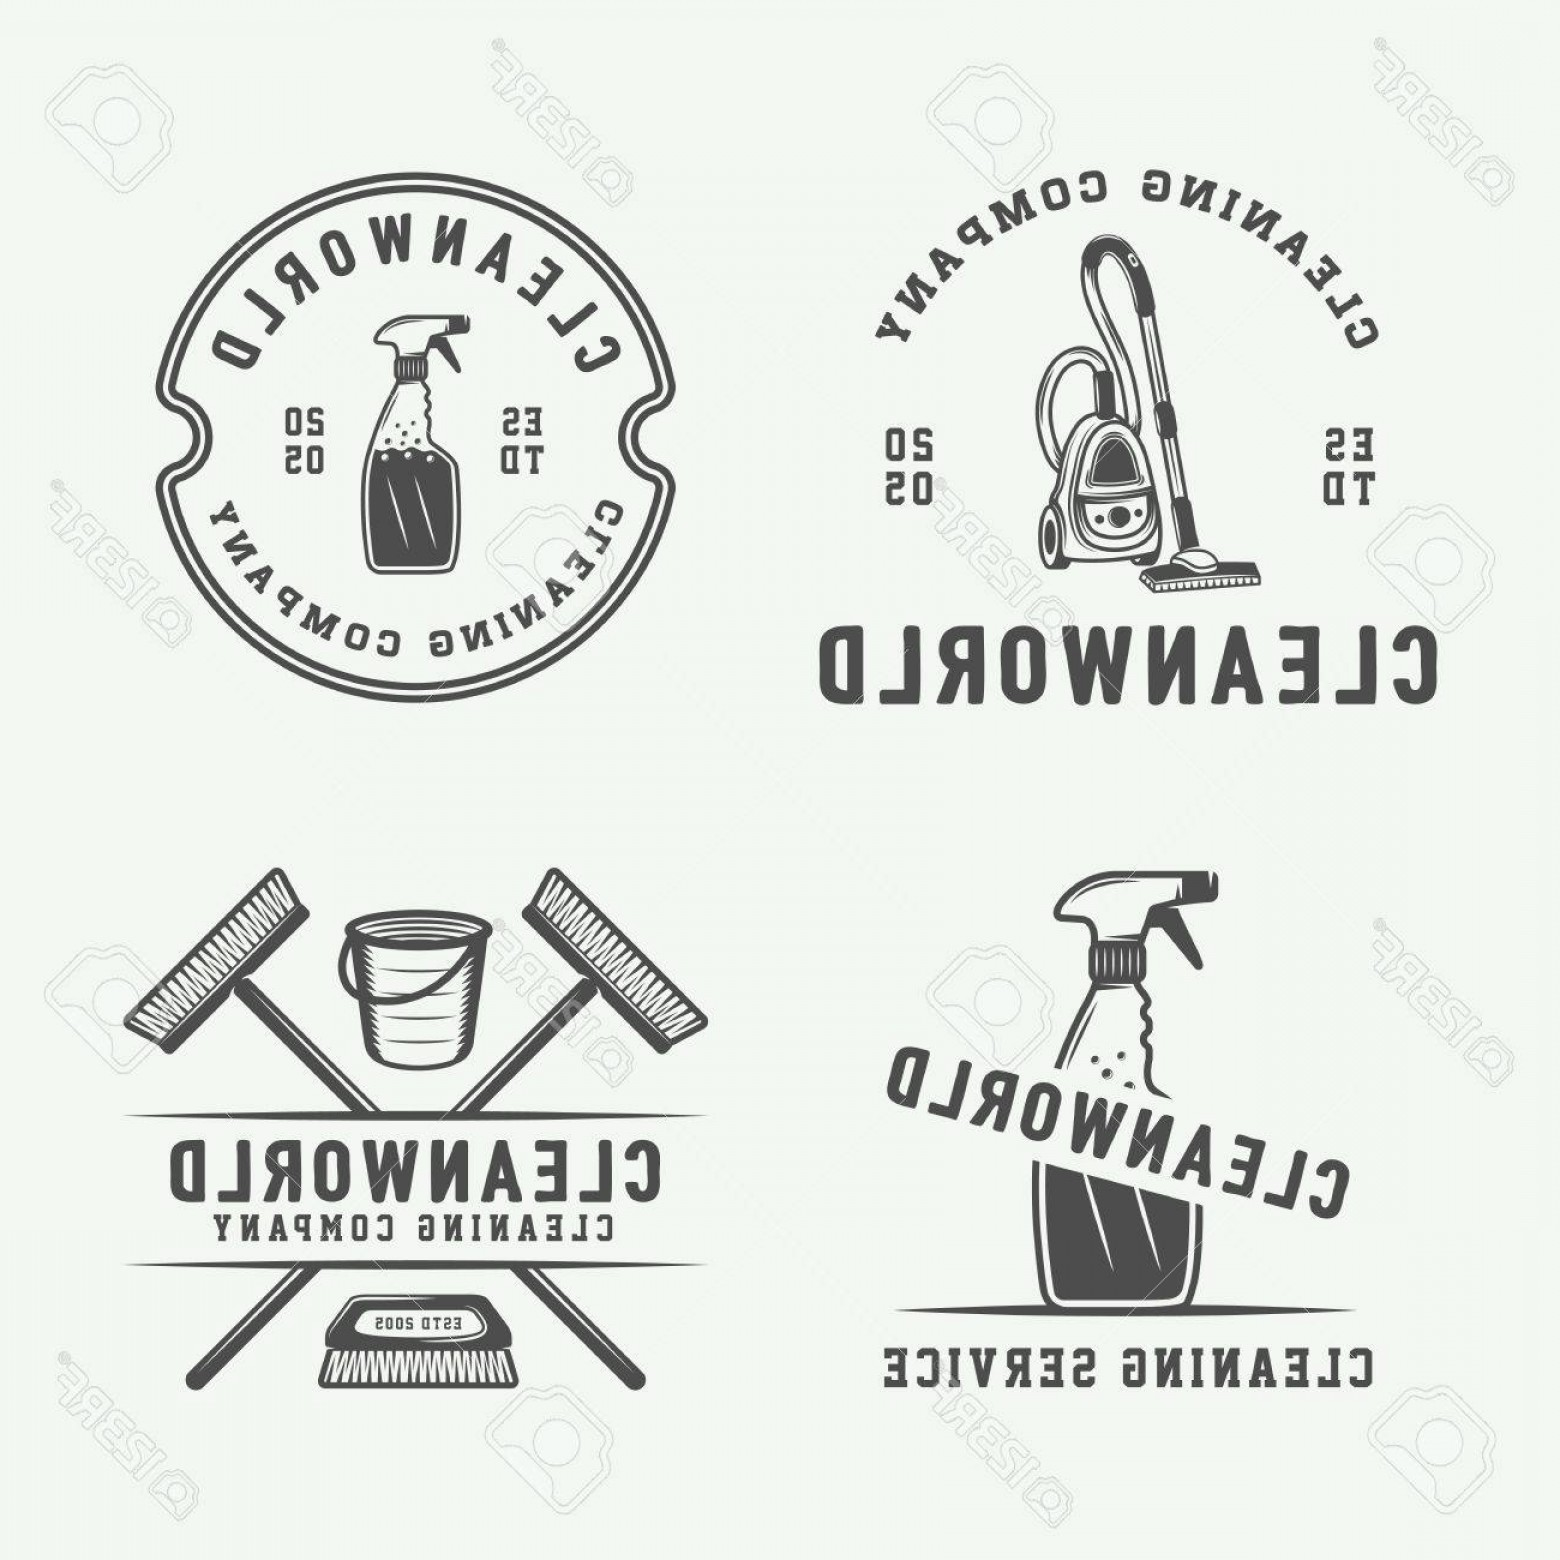 Cleaning Logo Vector Art: Photostock Vector Set Of Retro Cleaning Logo Badges Emblems And Labels In Vintage Style Monochrome Graphic Art Vector